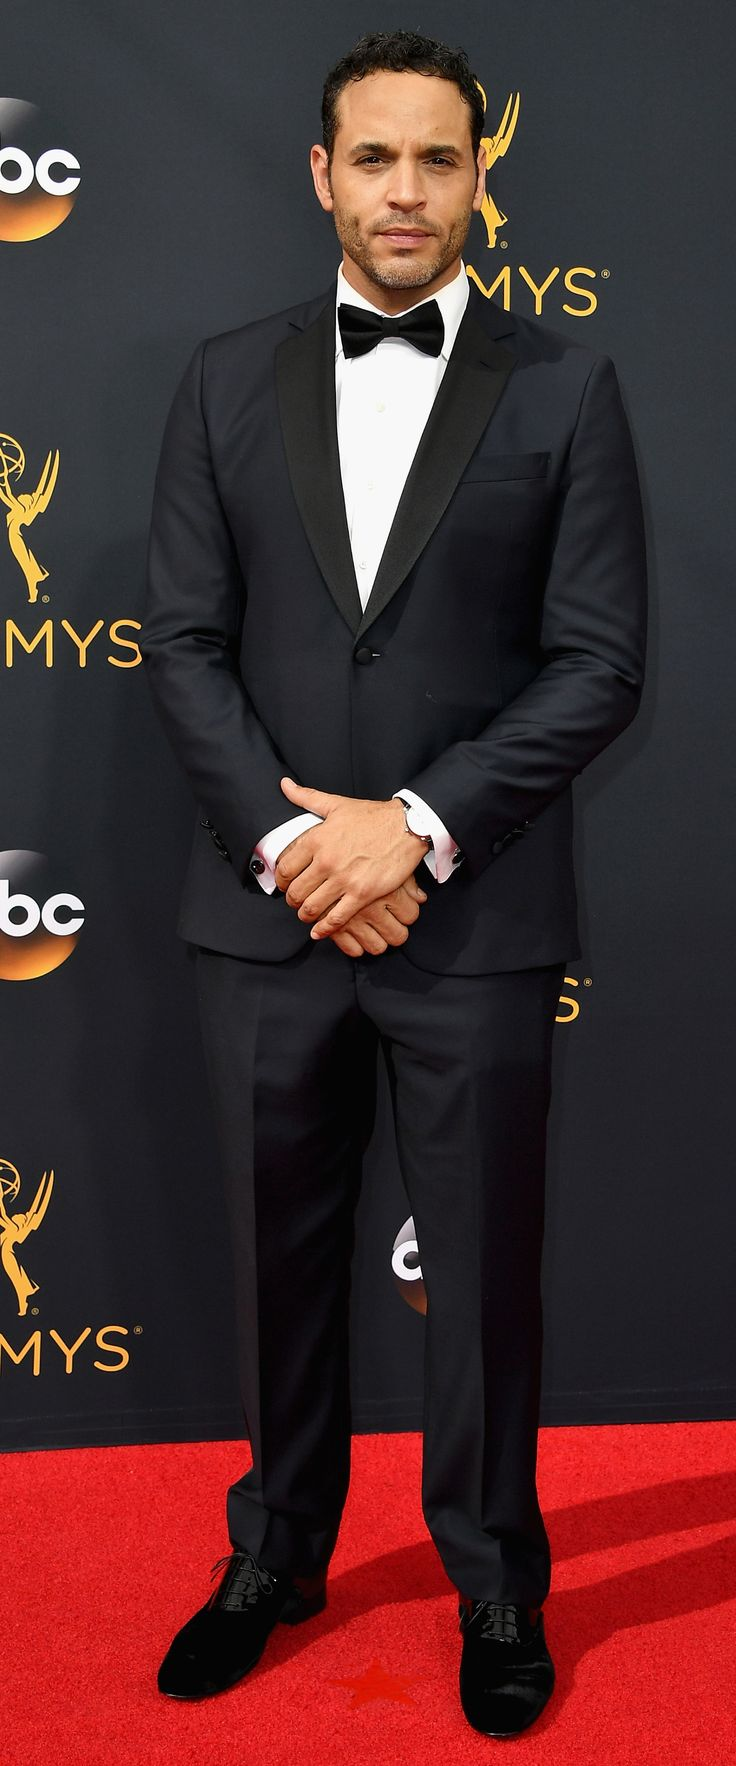 Check Out the Hottest Men on the 2016 Emmys Red Carpet - Daniel Sunjata from InStyle.com